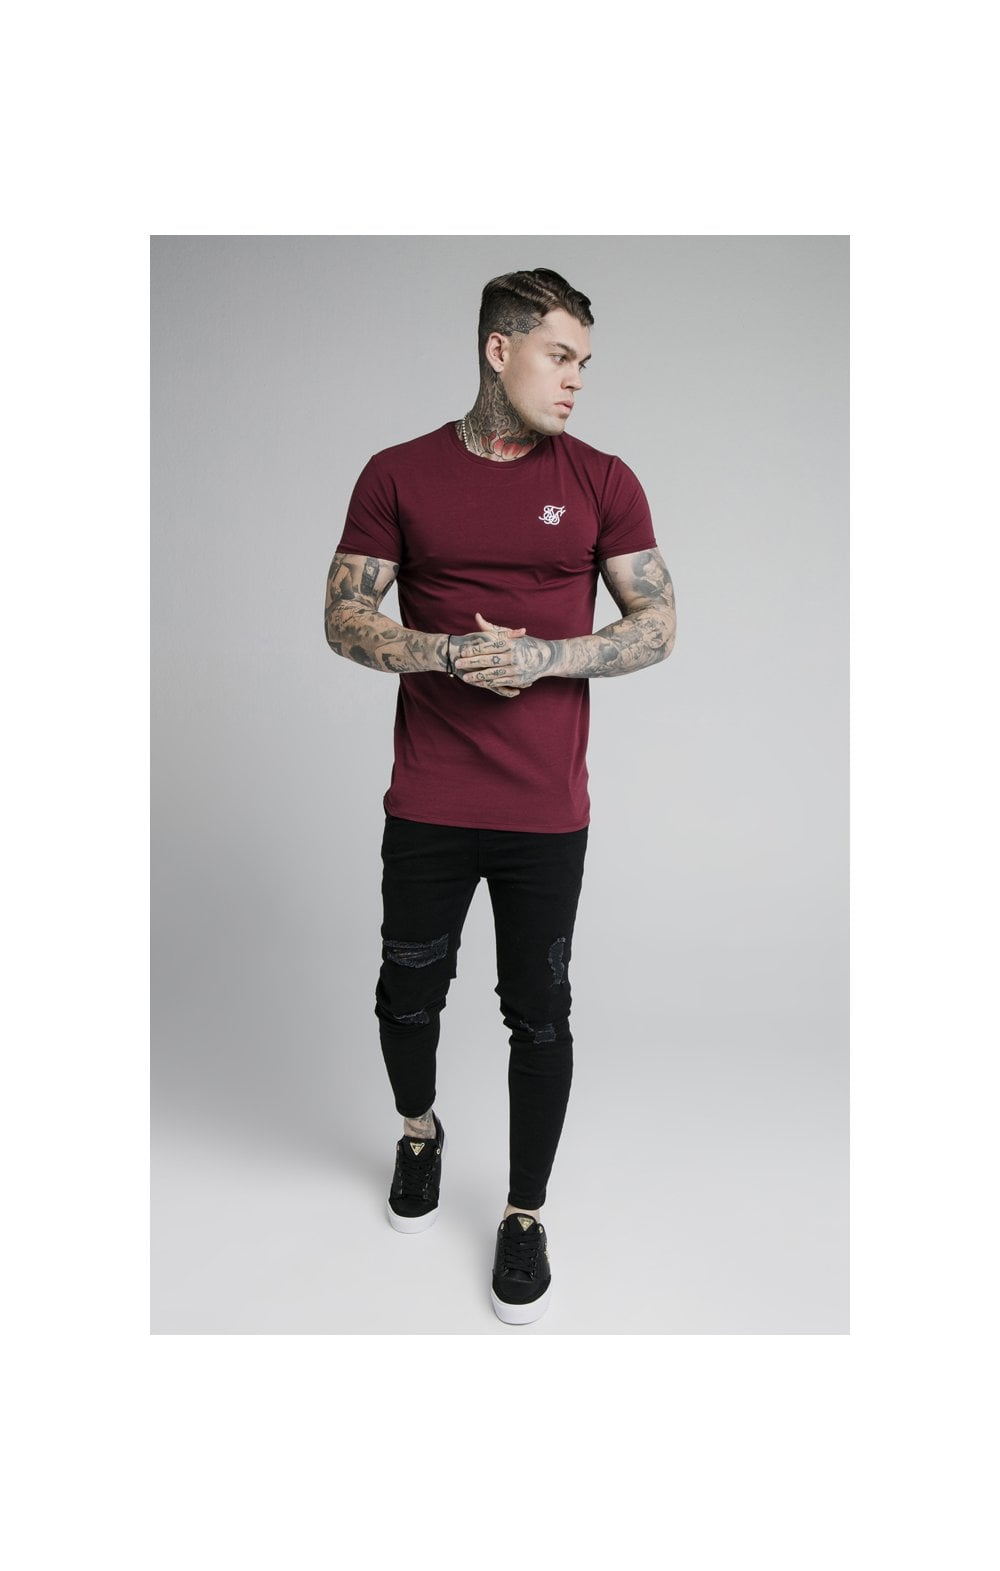 SikSilk Straight Hem Gym Tee - Burgundy (1)